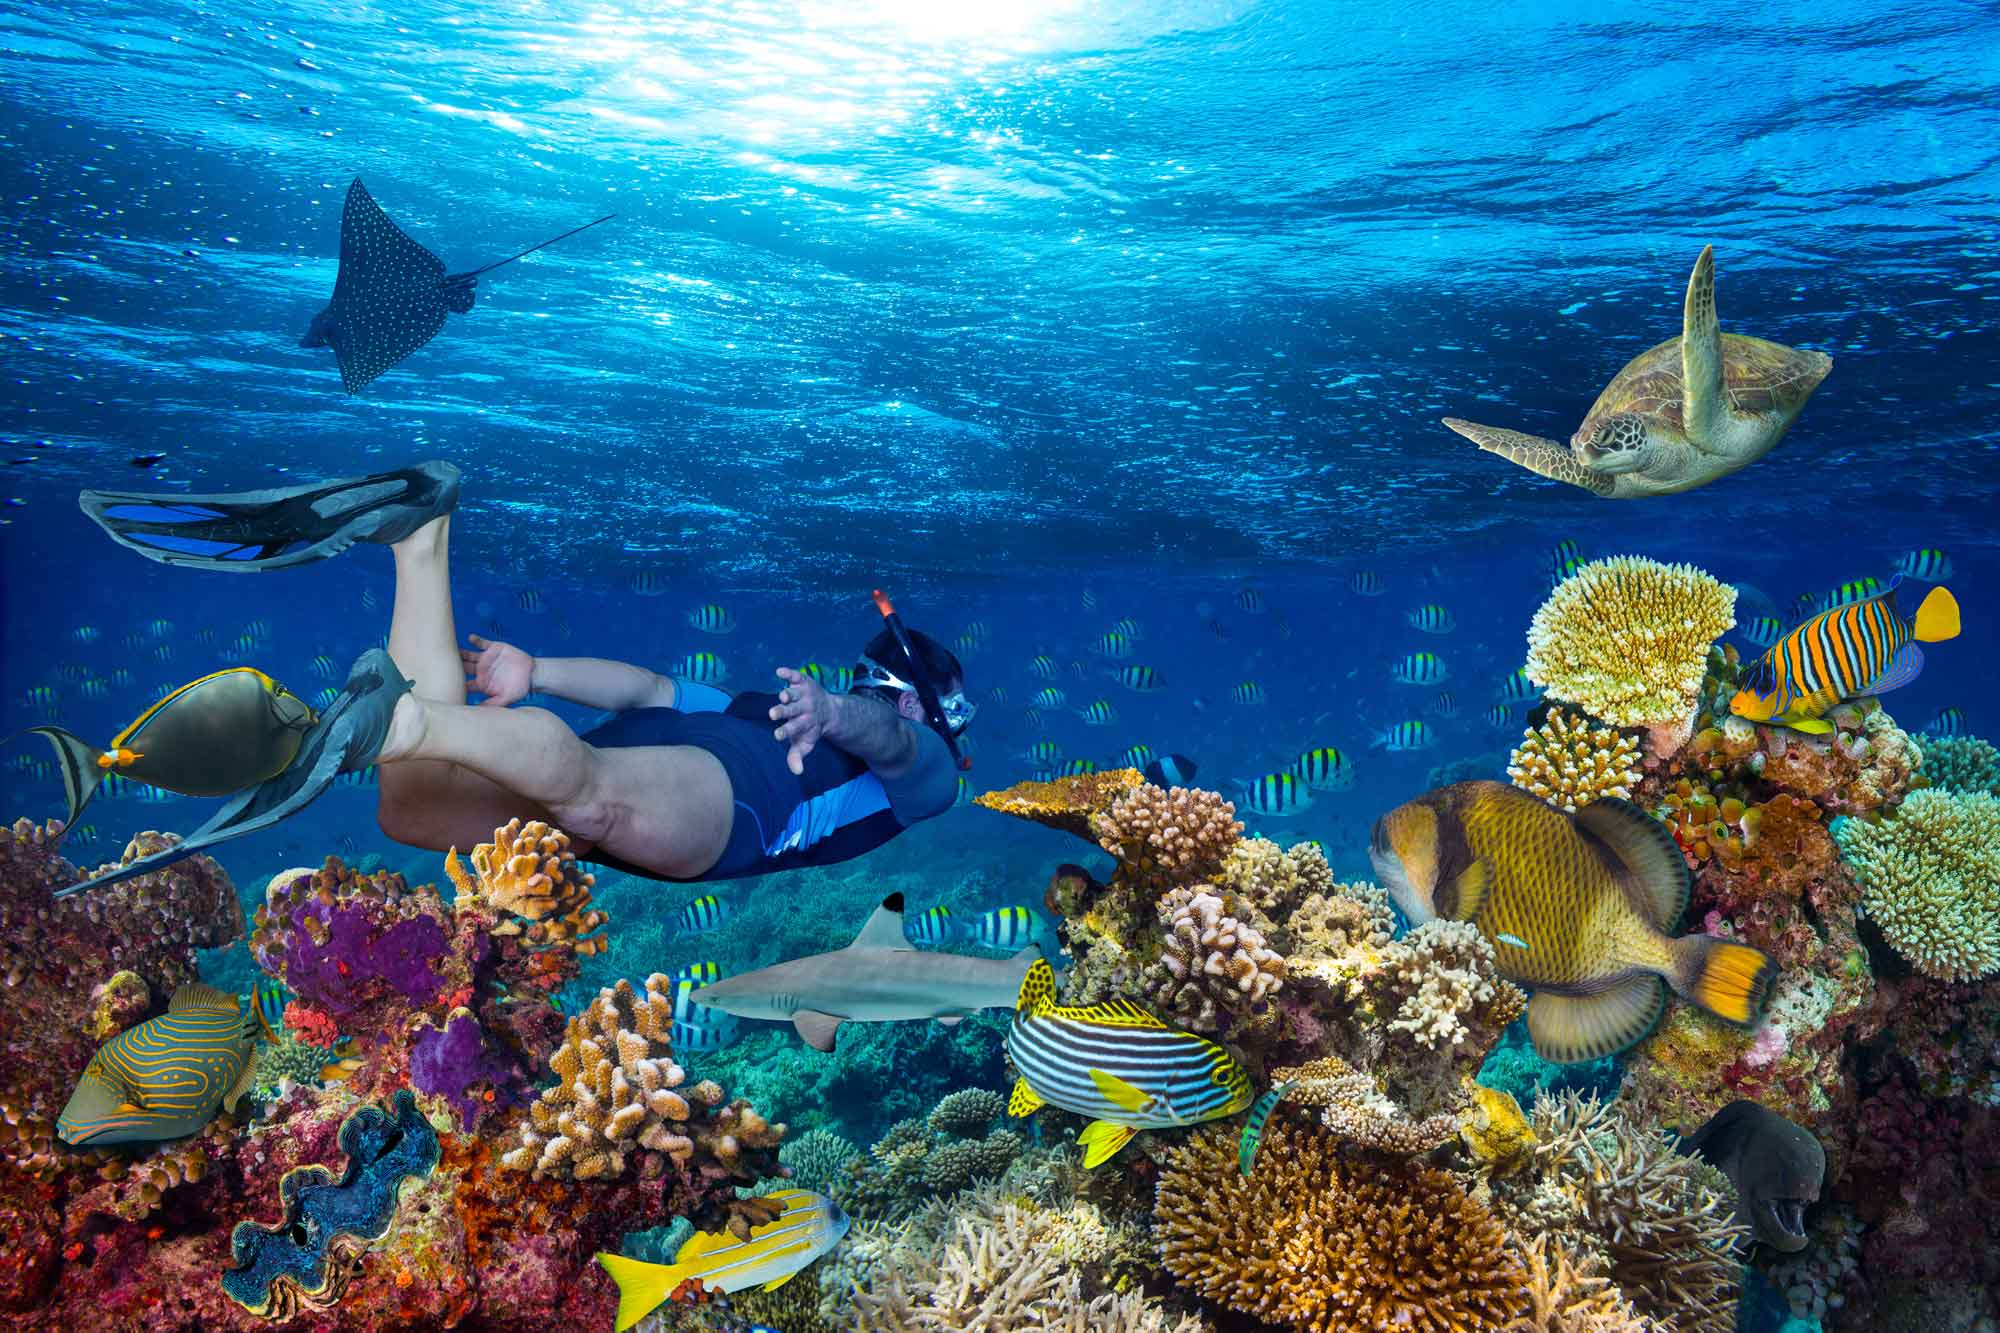 Person snorkeling underwater on the Great Barrier Reef